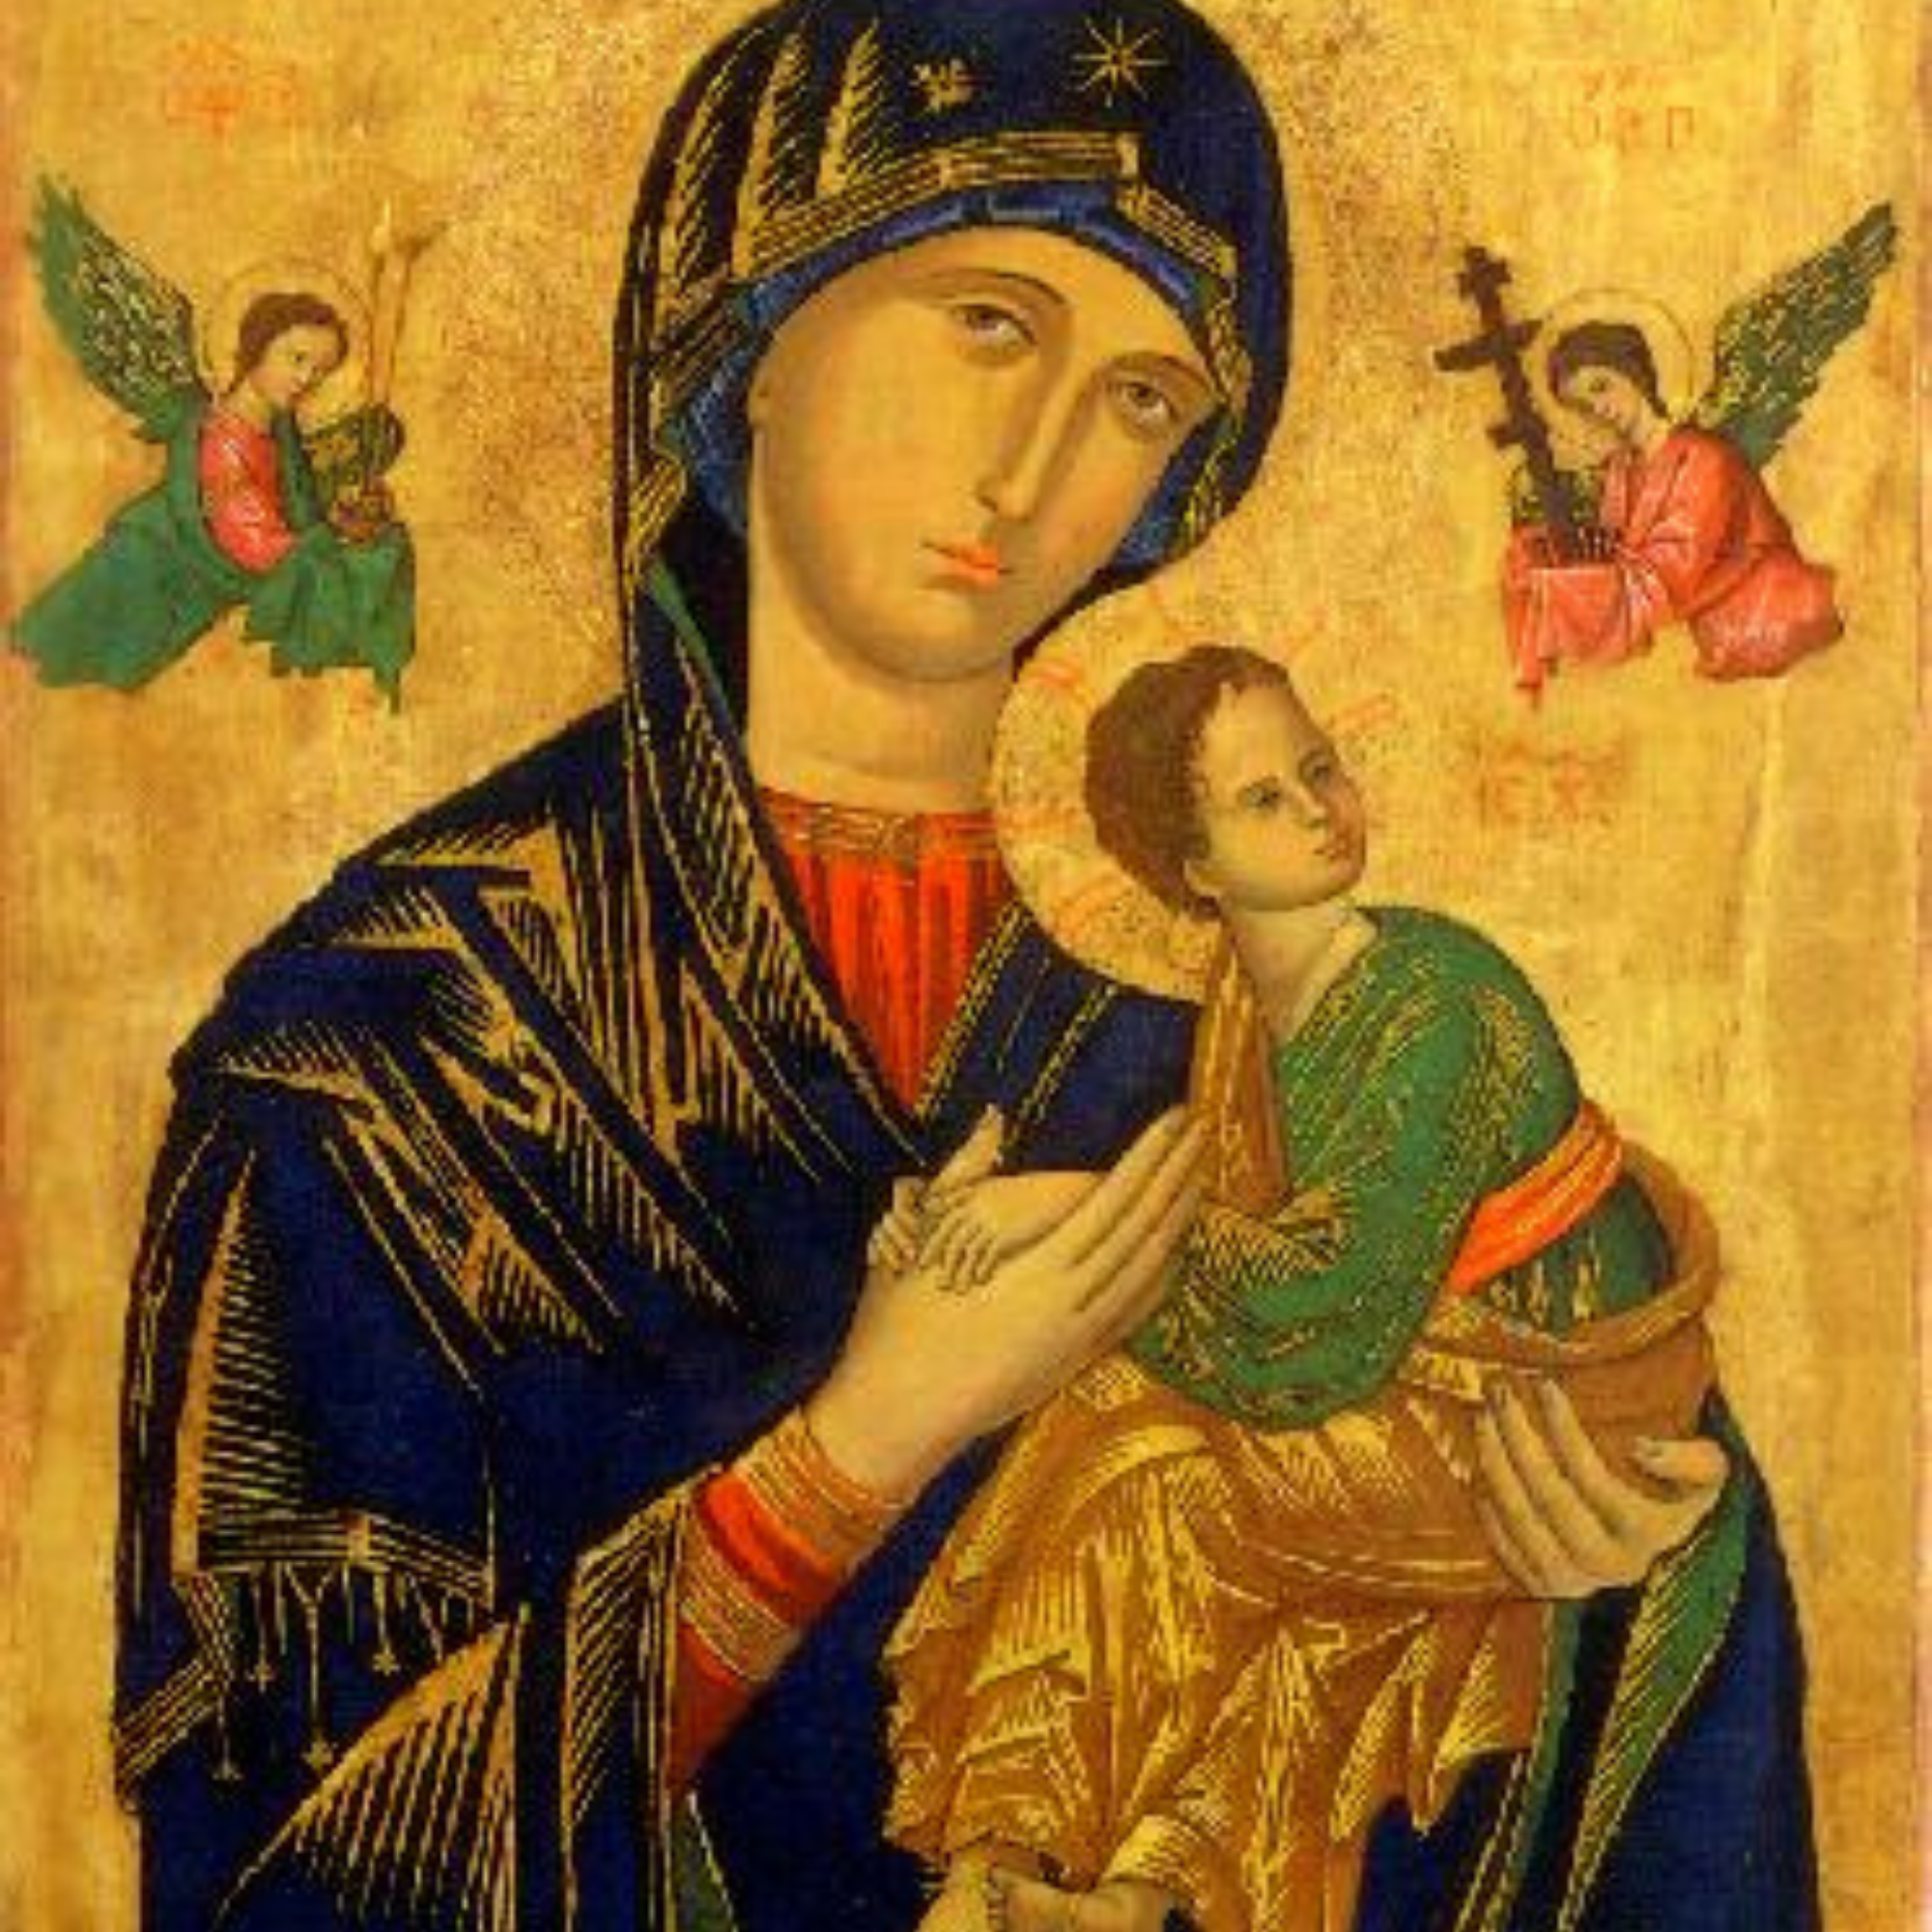 What do Catholics believe about Mary?